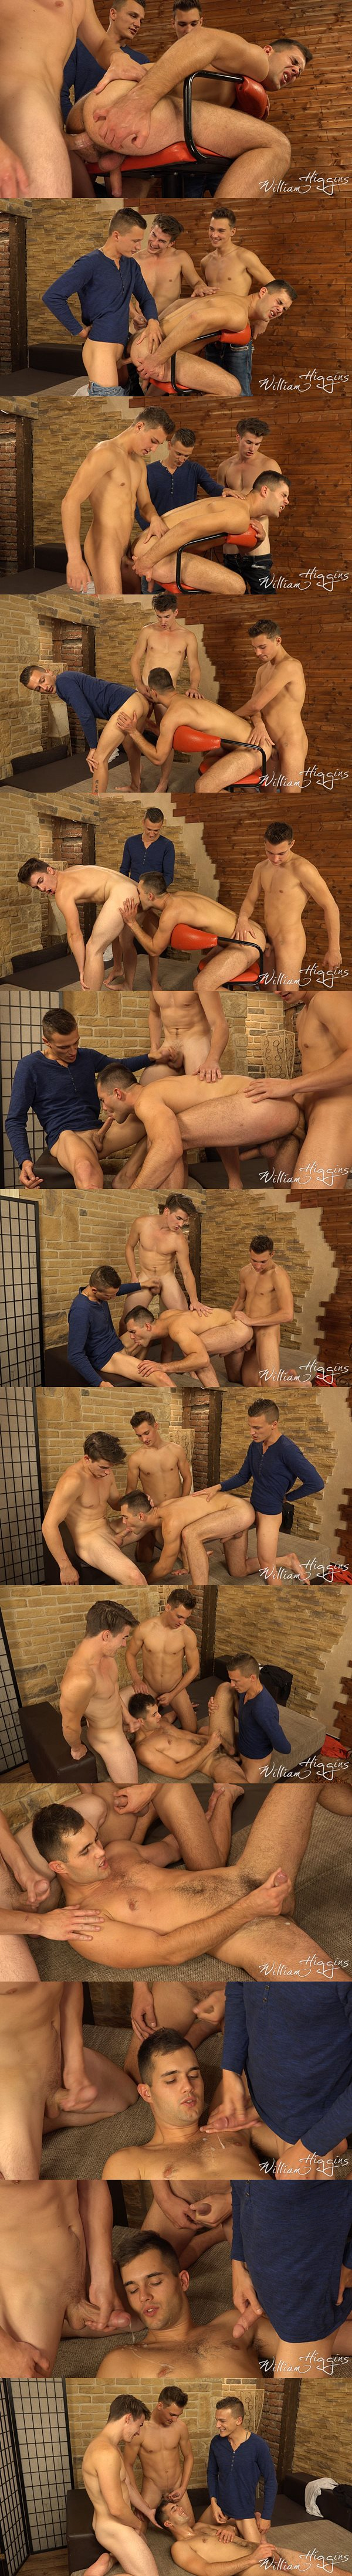 Dusan Polanek, Martin Polnak and Peter Andre bareback Alan Carly in Wank Party 2016 #10 Part 2 at Williamhiggins 02